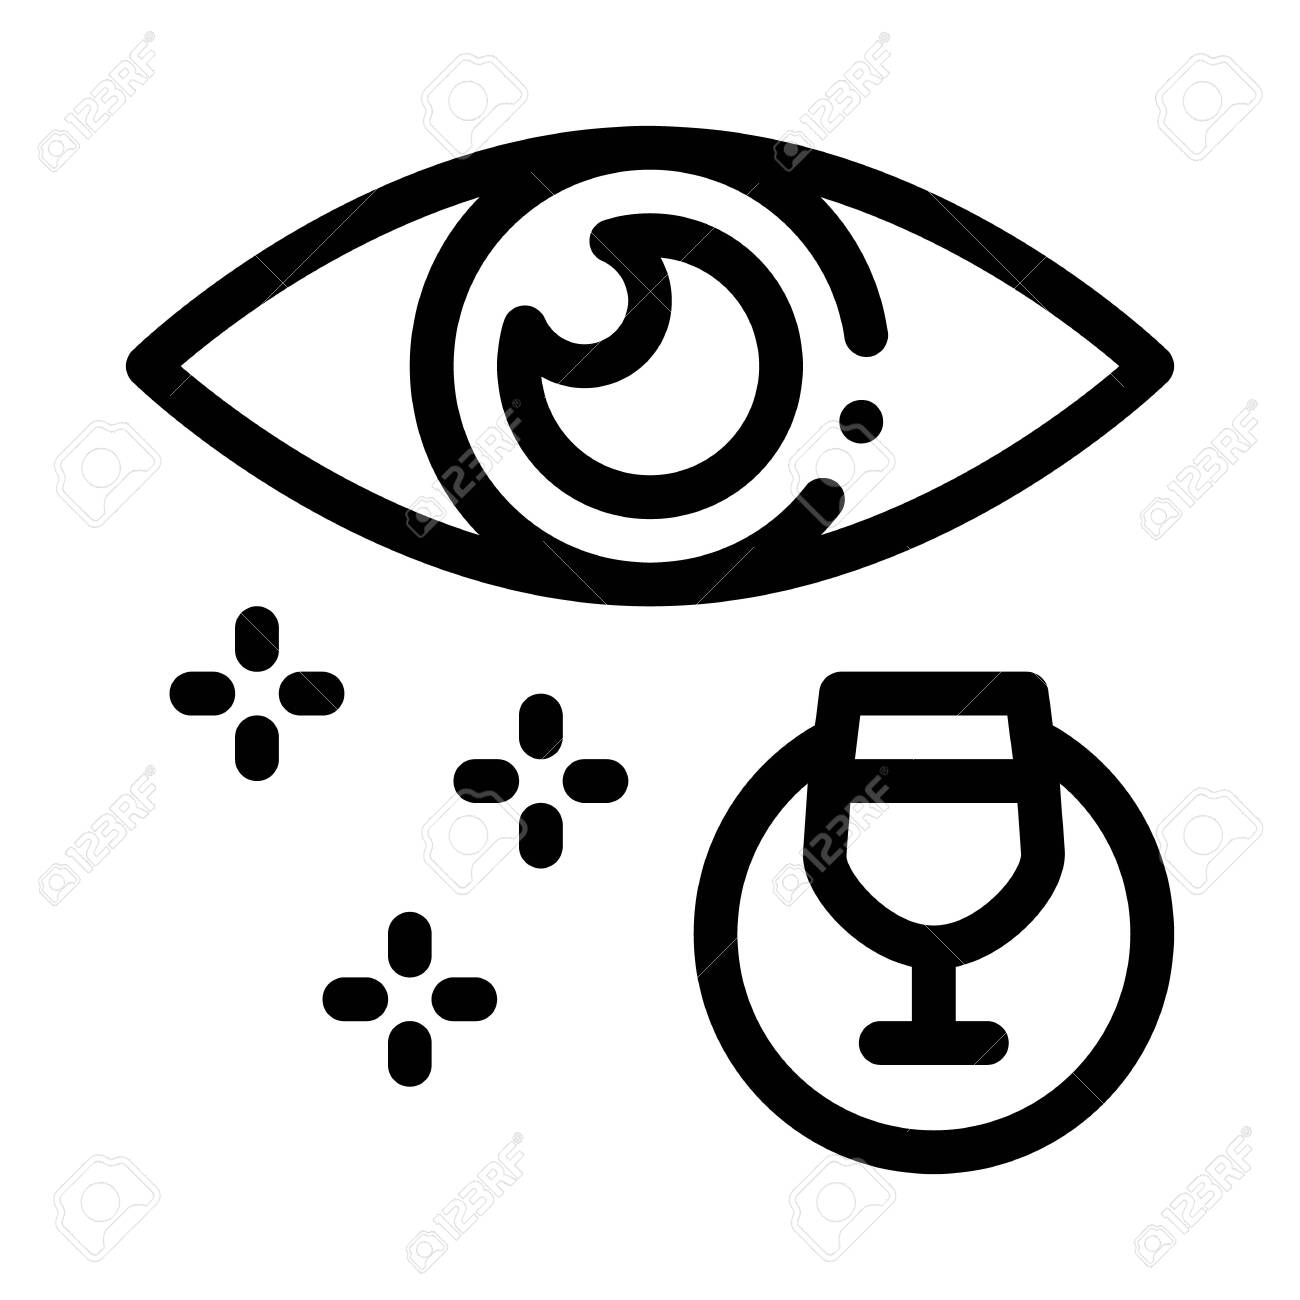 External Assessment Of Wine Icon Vector External Assessment Royalty Free Cliparts Vectors And Stock Illustration Image 144713352 You will have one attempt at this assessment. 123rf com